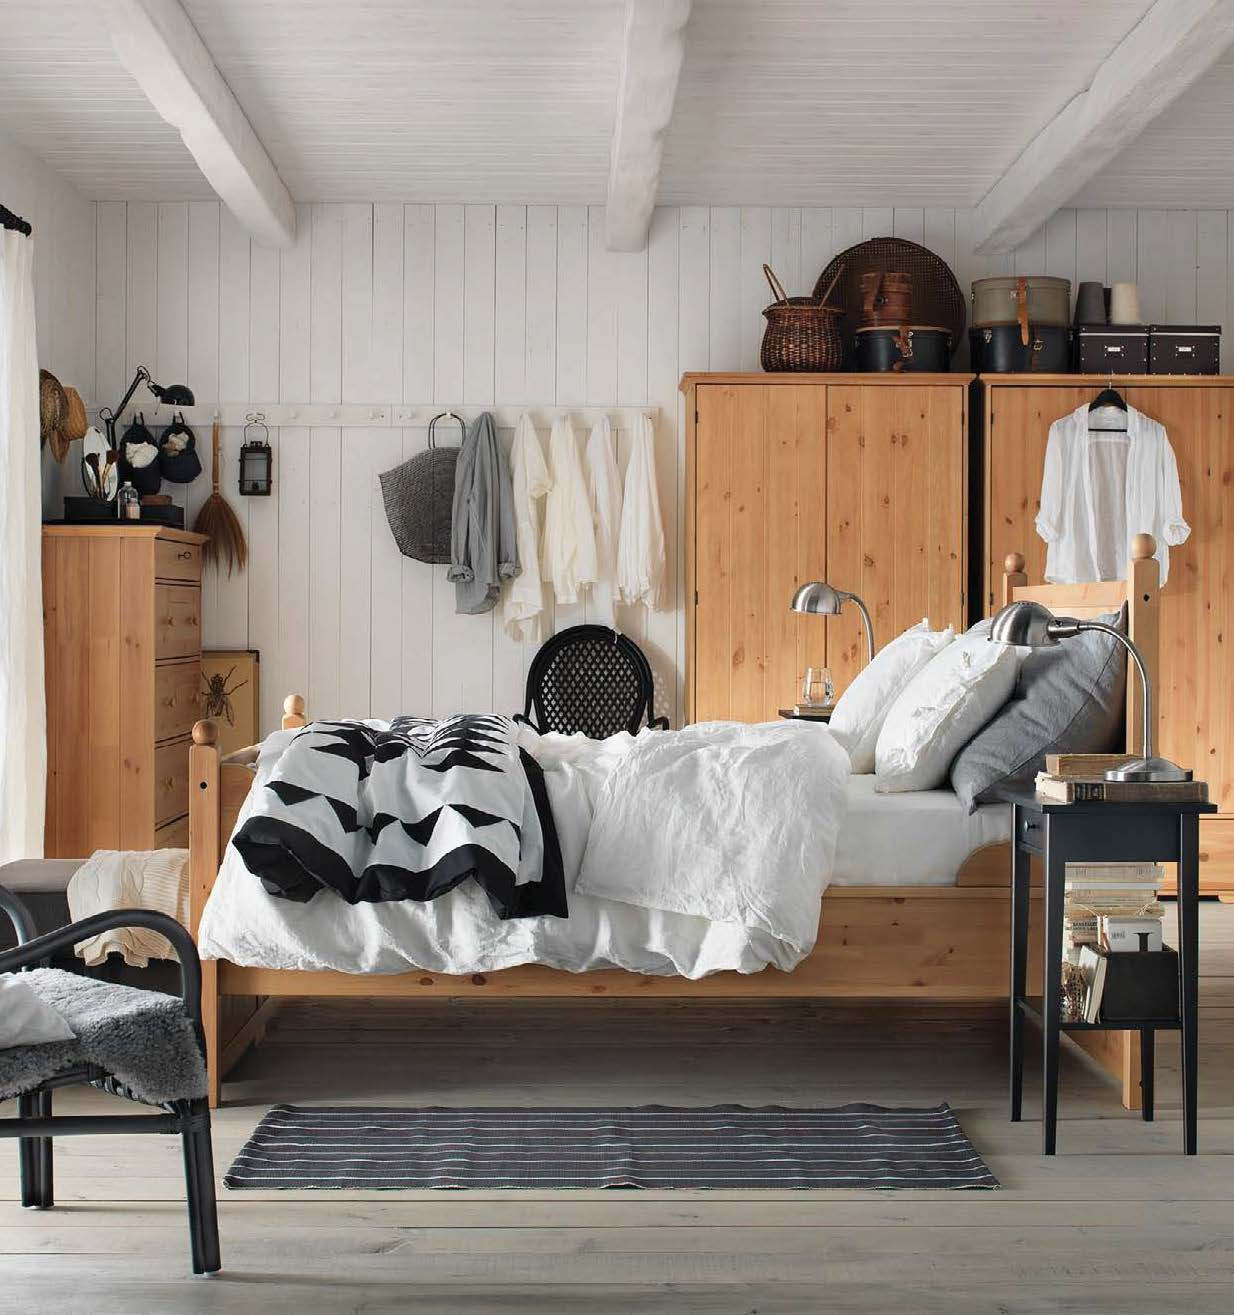 Scandinavian bedroom interior design ideas Scandinavian interior design bedroom